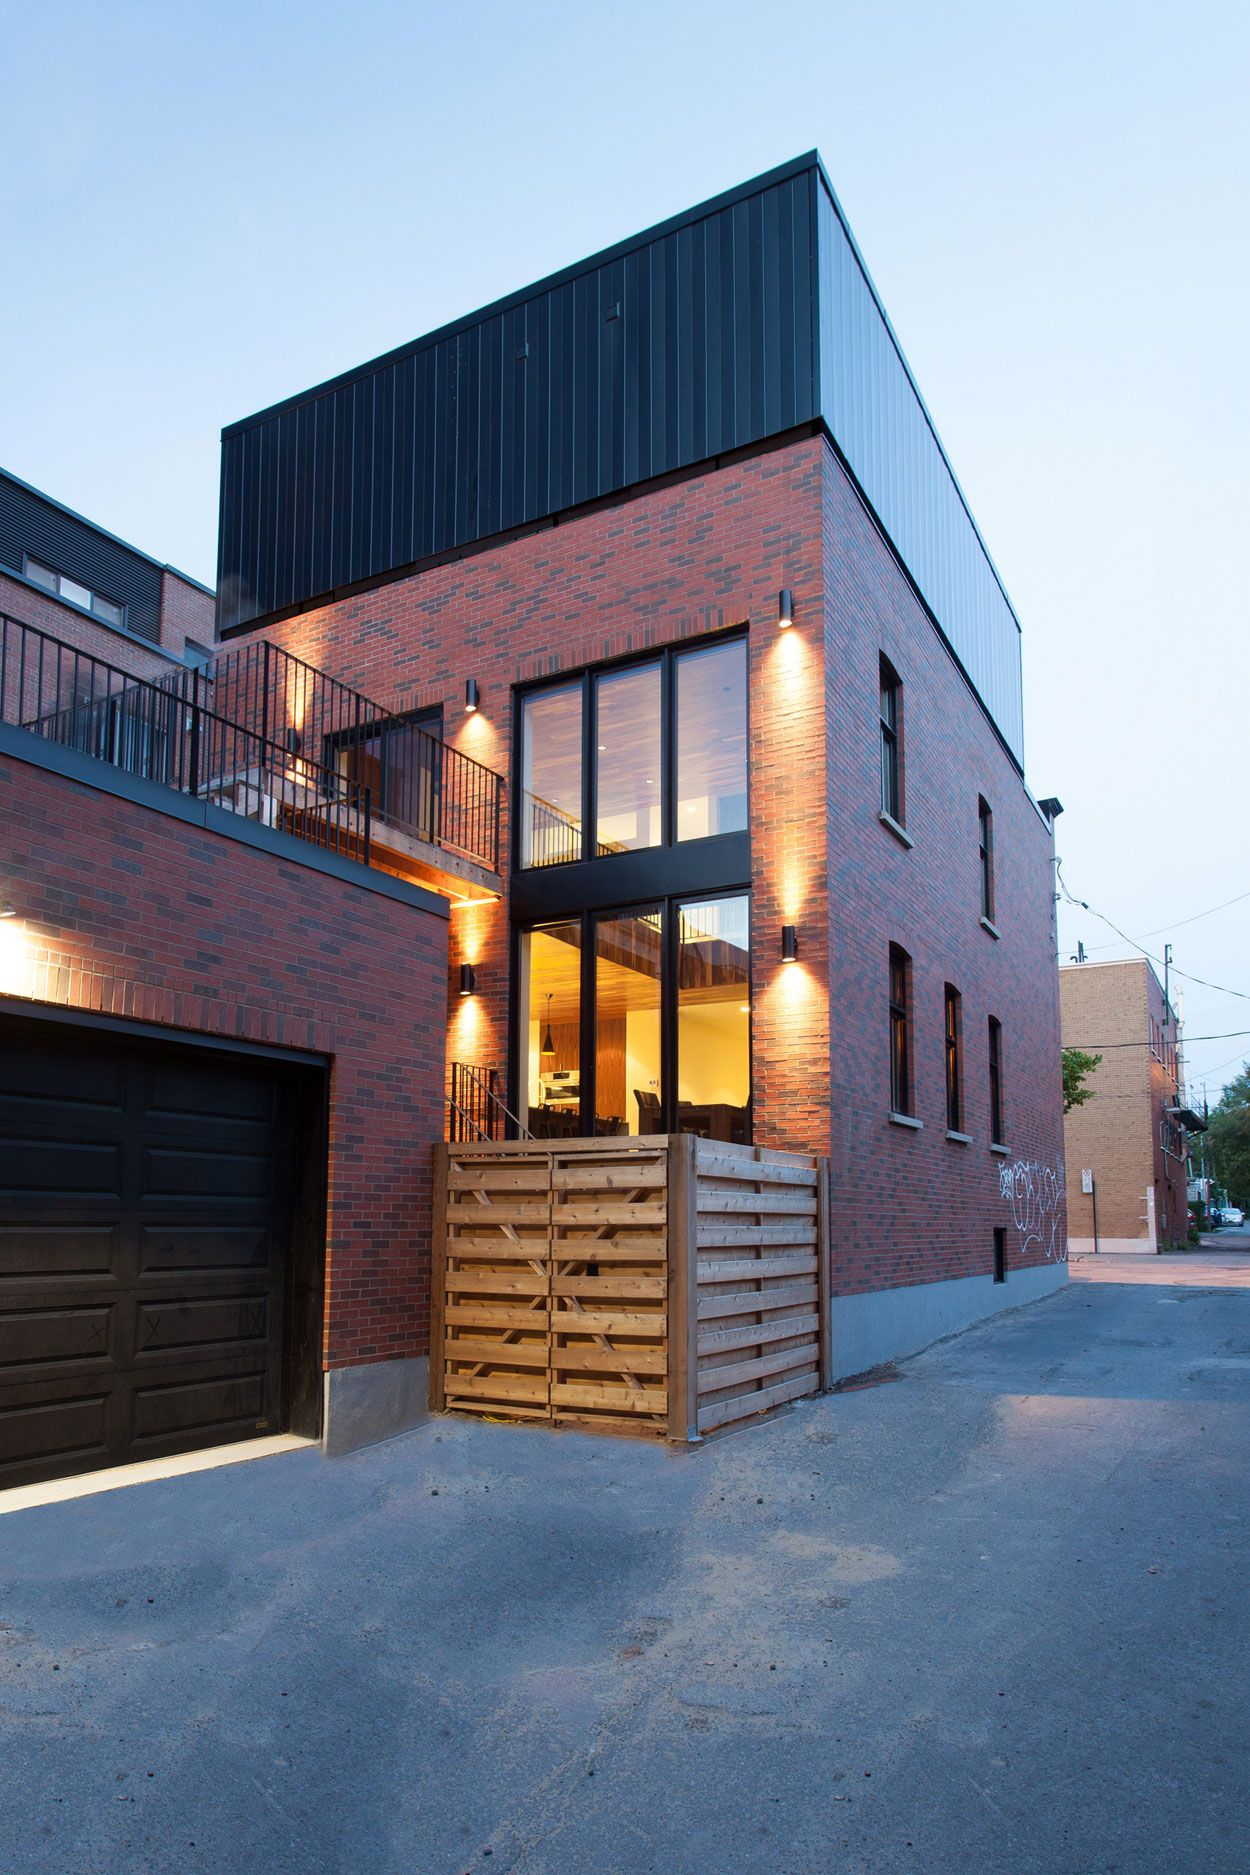 Wonderful Appareil Architecture Designs A Single Family Home In Montreal, Canada Pictures Gallery